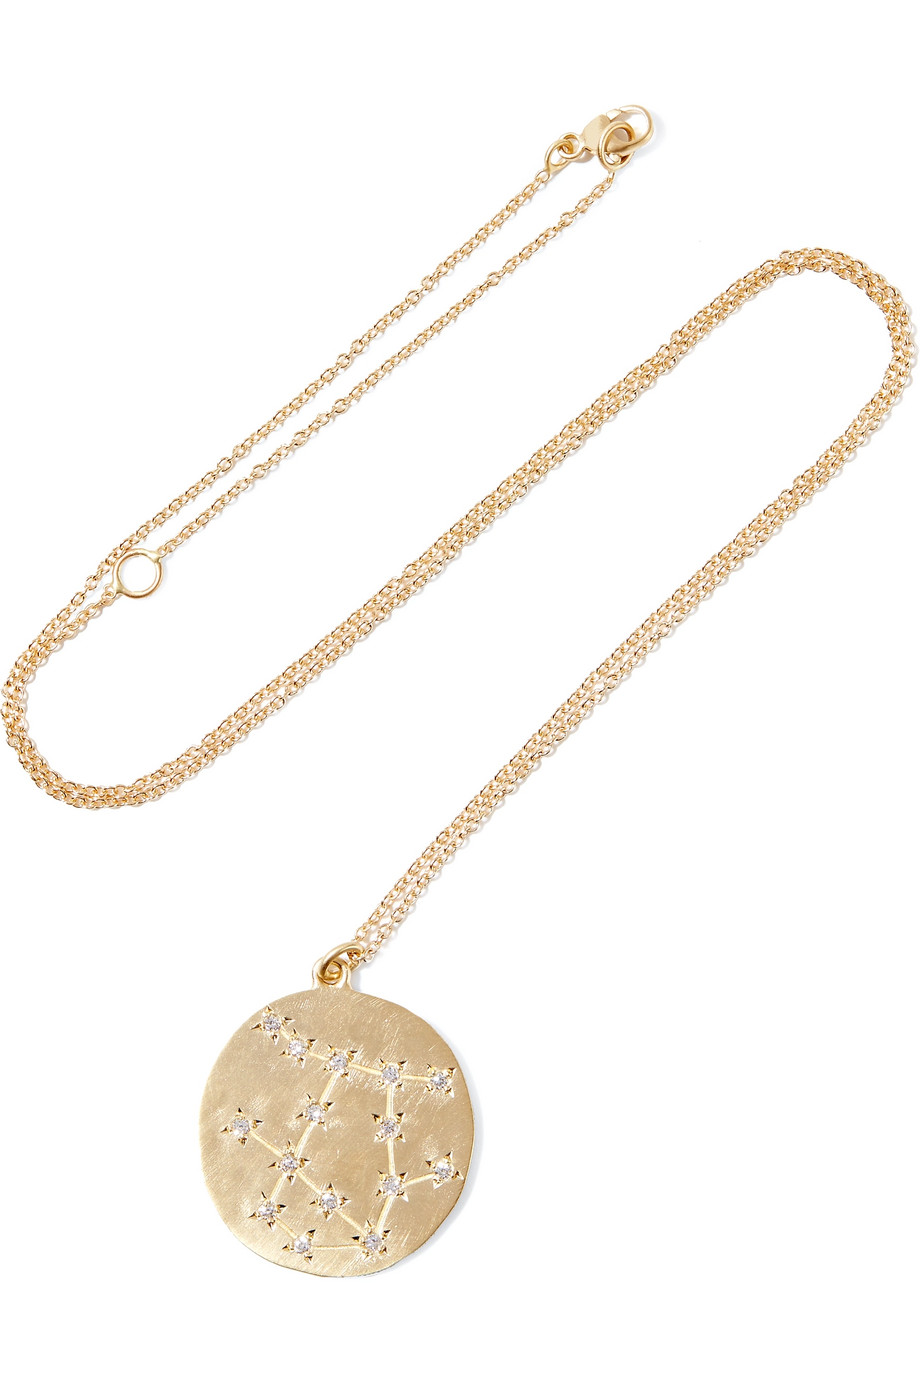 Brooke Gregson Gemini 14-Karat Gold Diamond Necklace, Women's